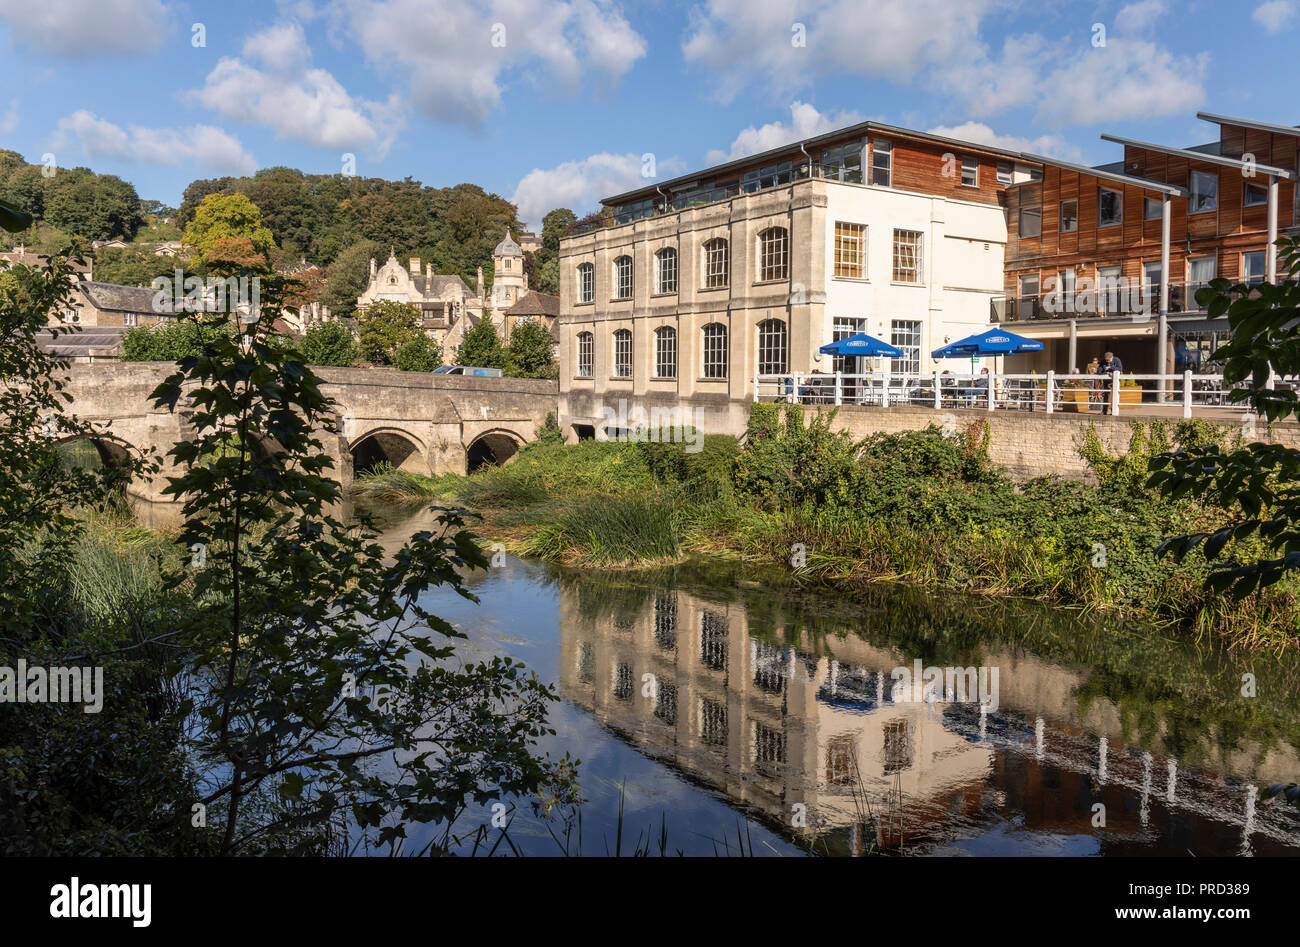 Bradford on Avon town bridge and Kingston Mills with refelctions in the River Avon, Wiltshire, UK - Stock Image